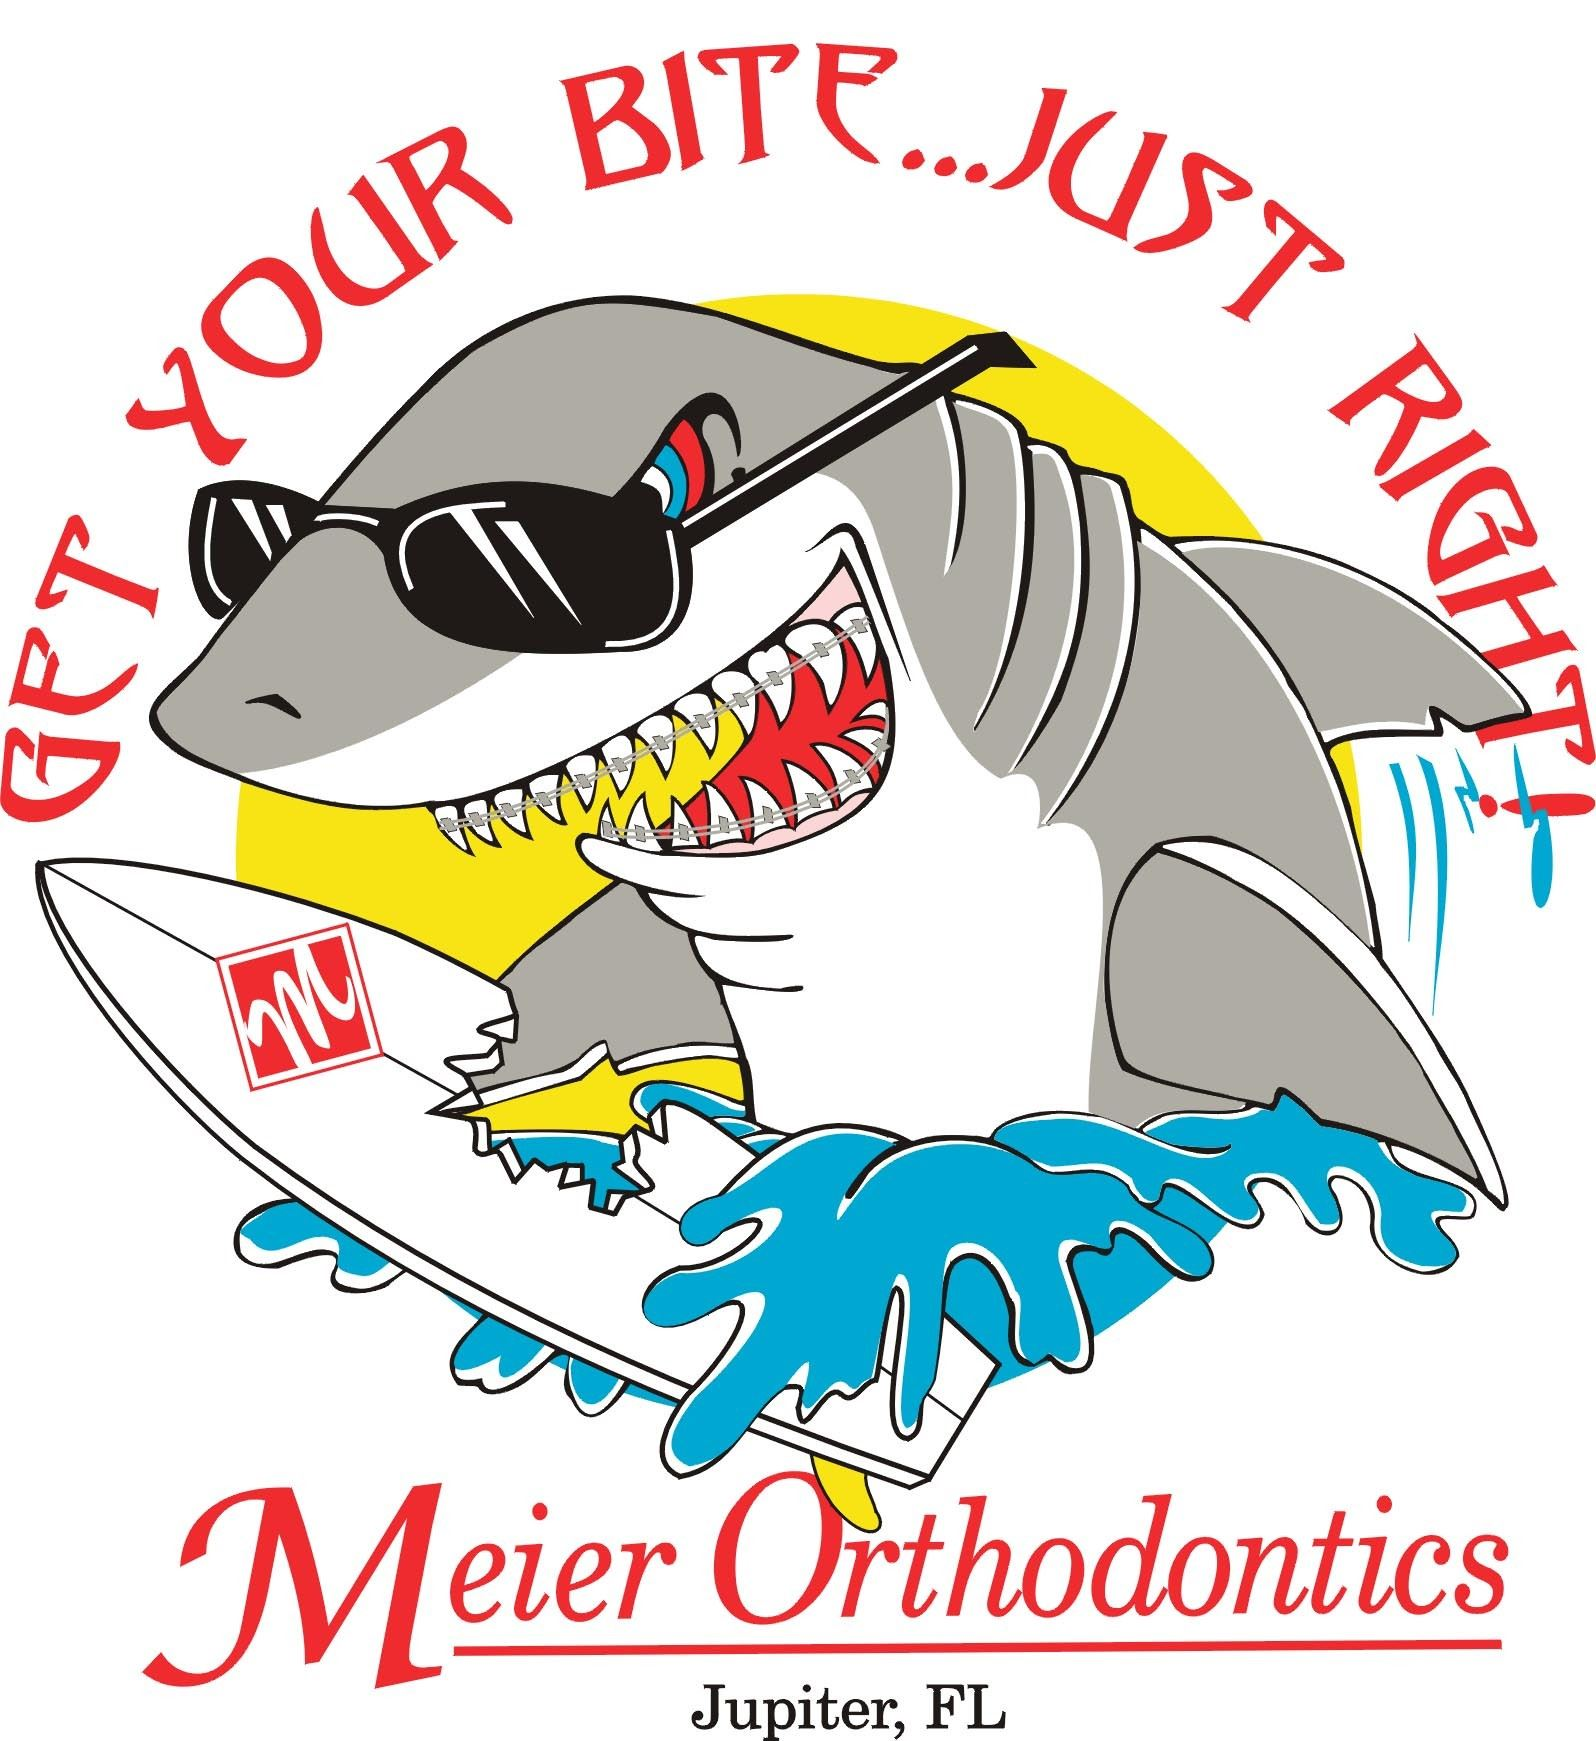 Meier Orthodontics Logo Opens in new window